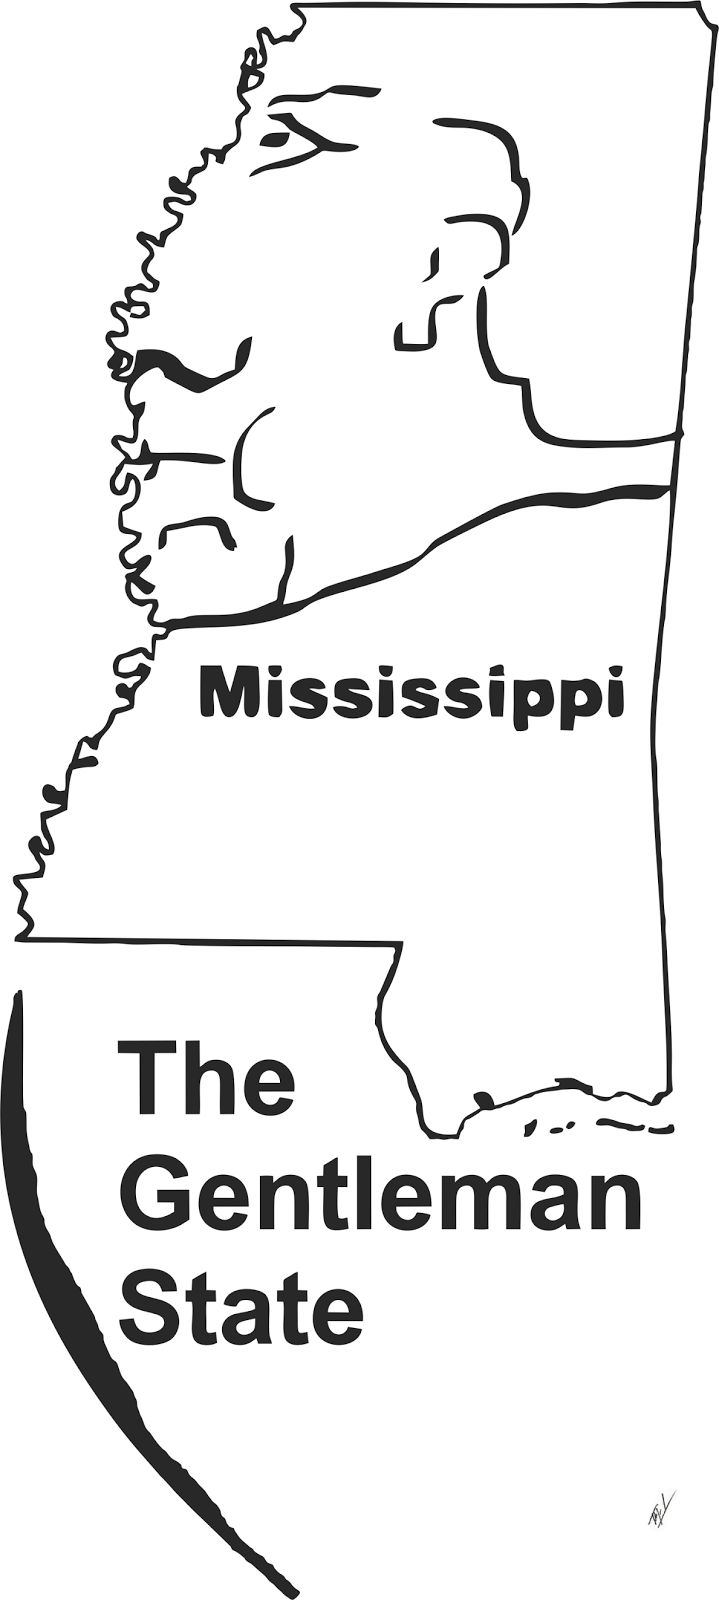 Funny maps: A funny map of Mississippi